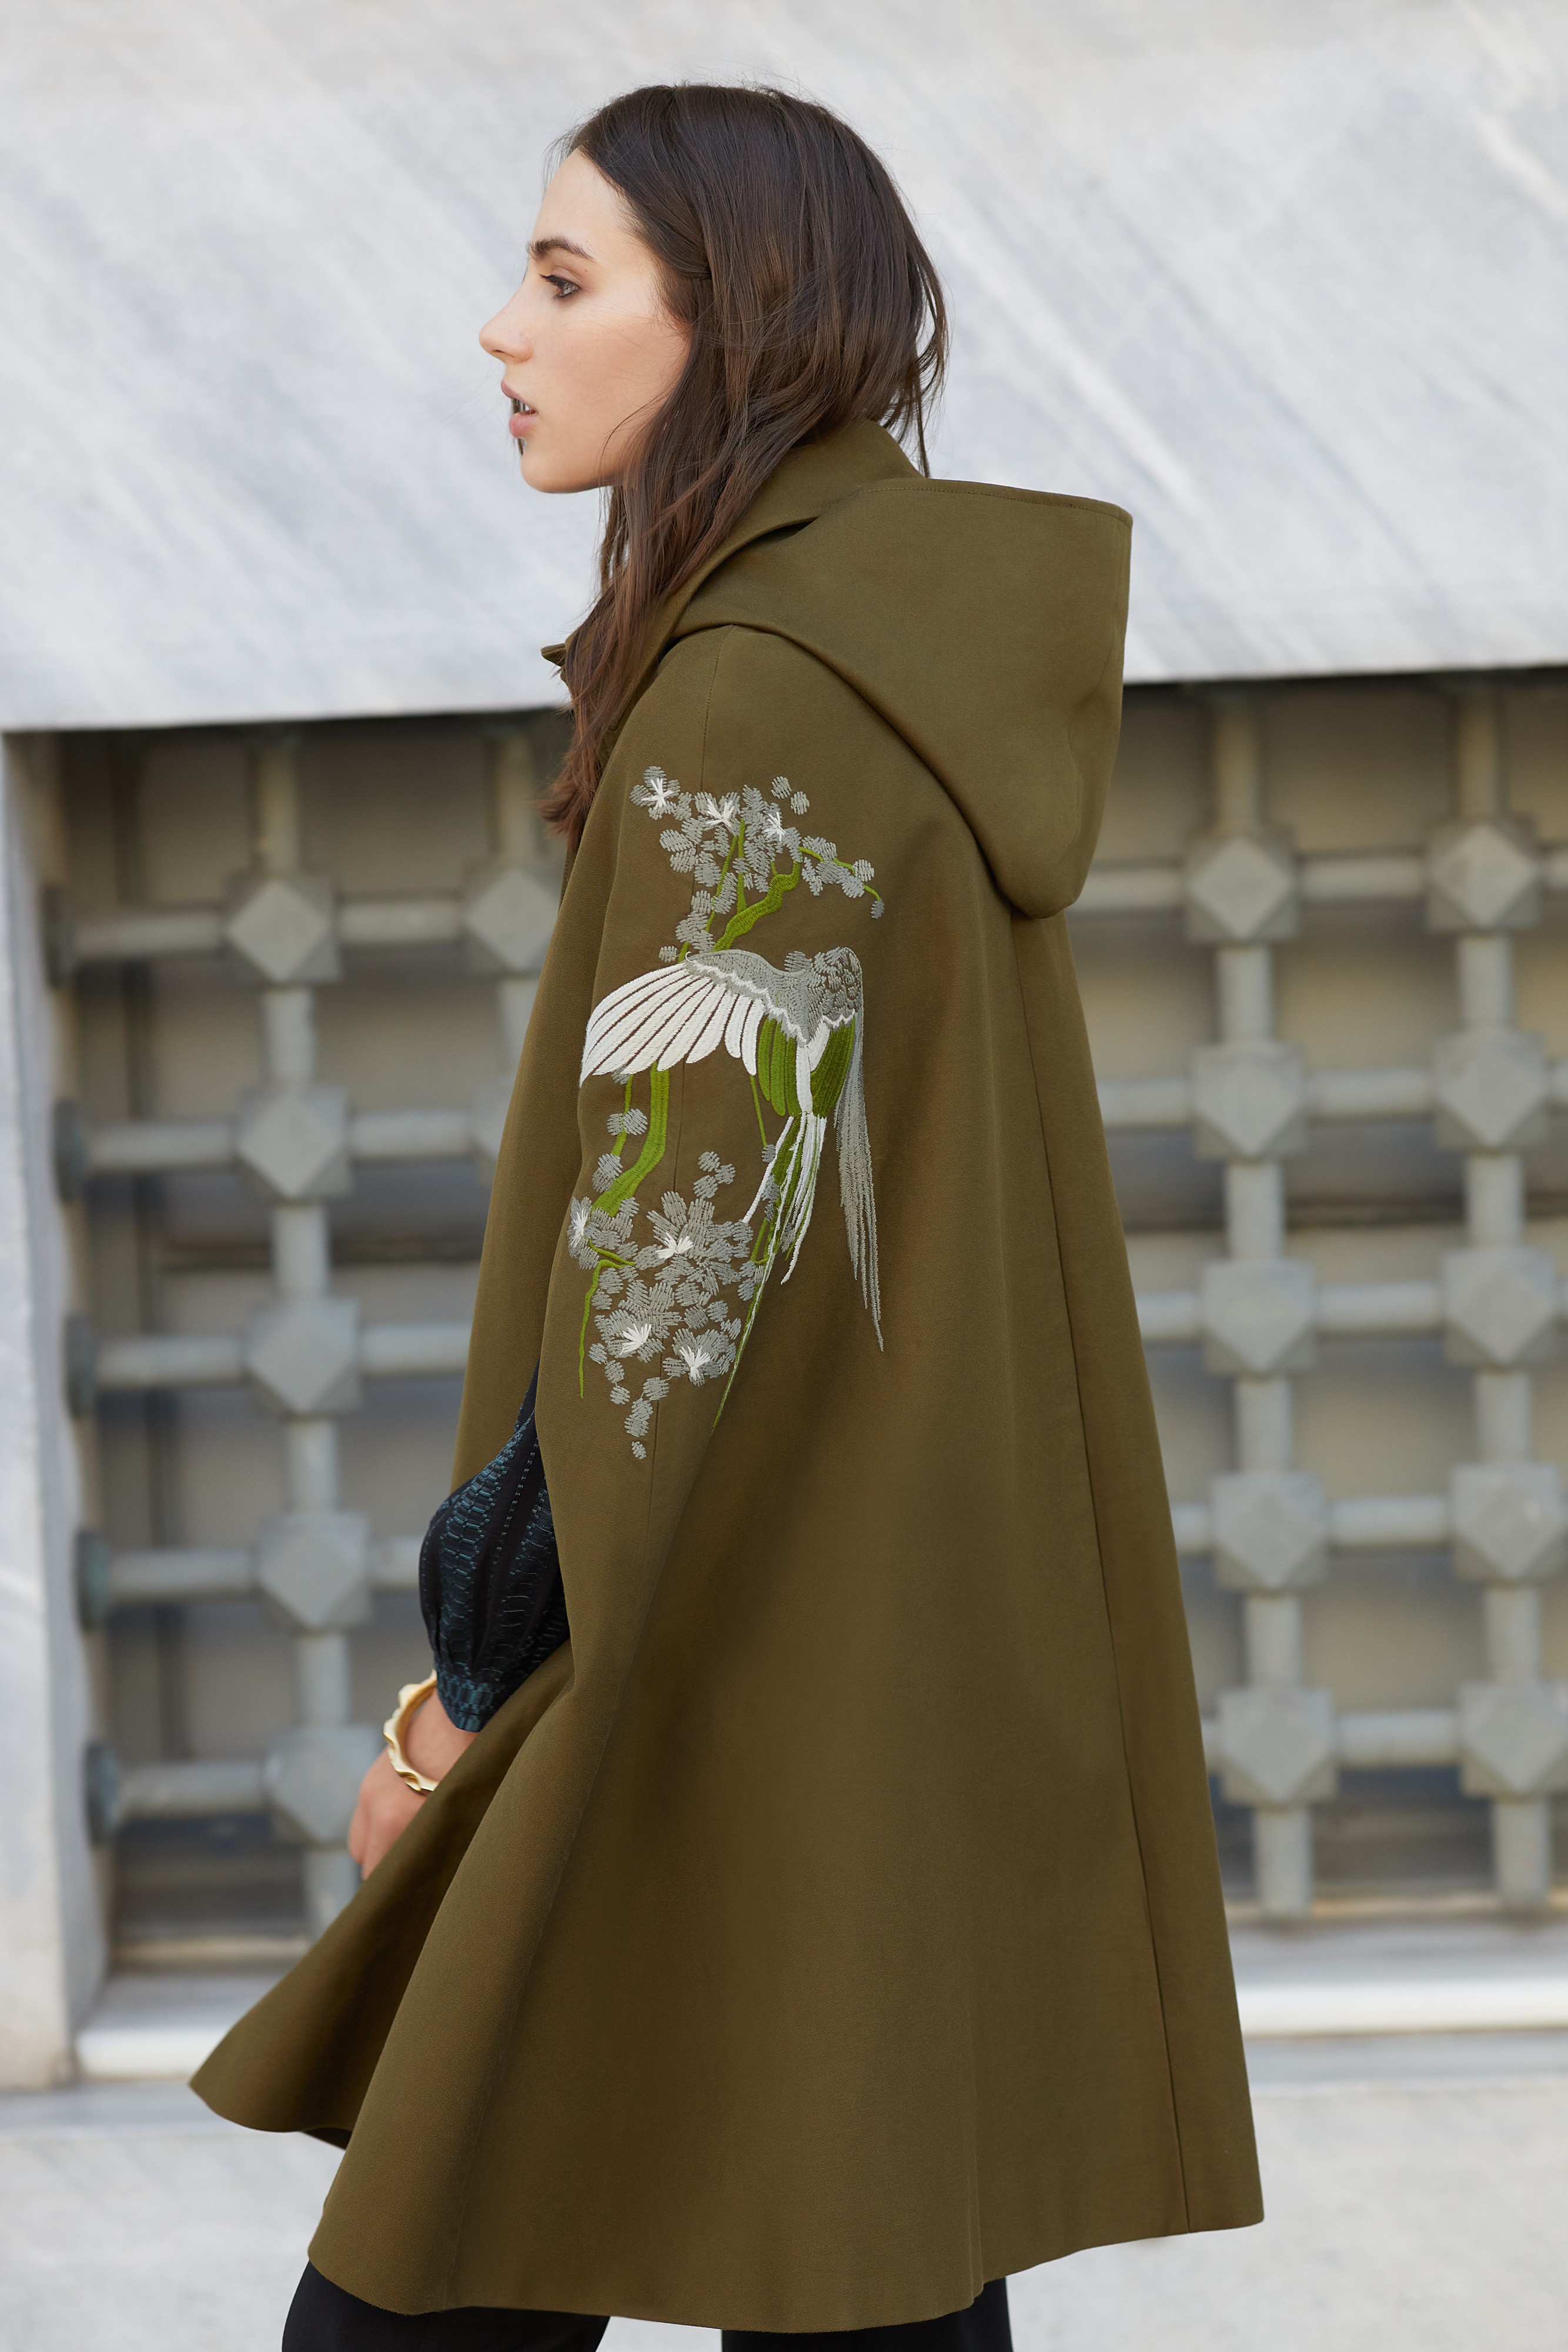 Zeus+Dione - Fall-Winter '20-'21, ''Nymphe'' Collection. Photo credits: Yiannis Bournias